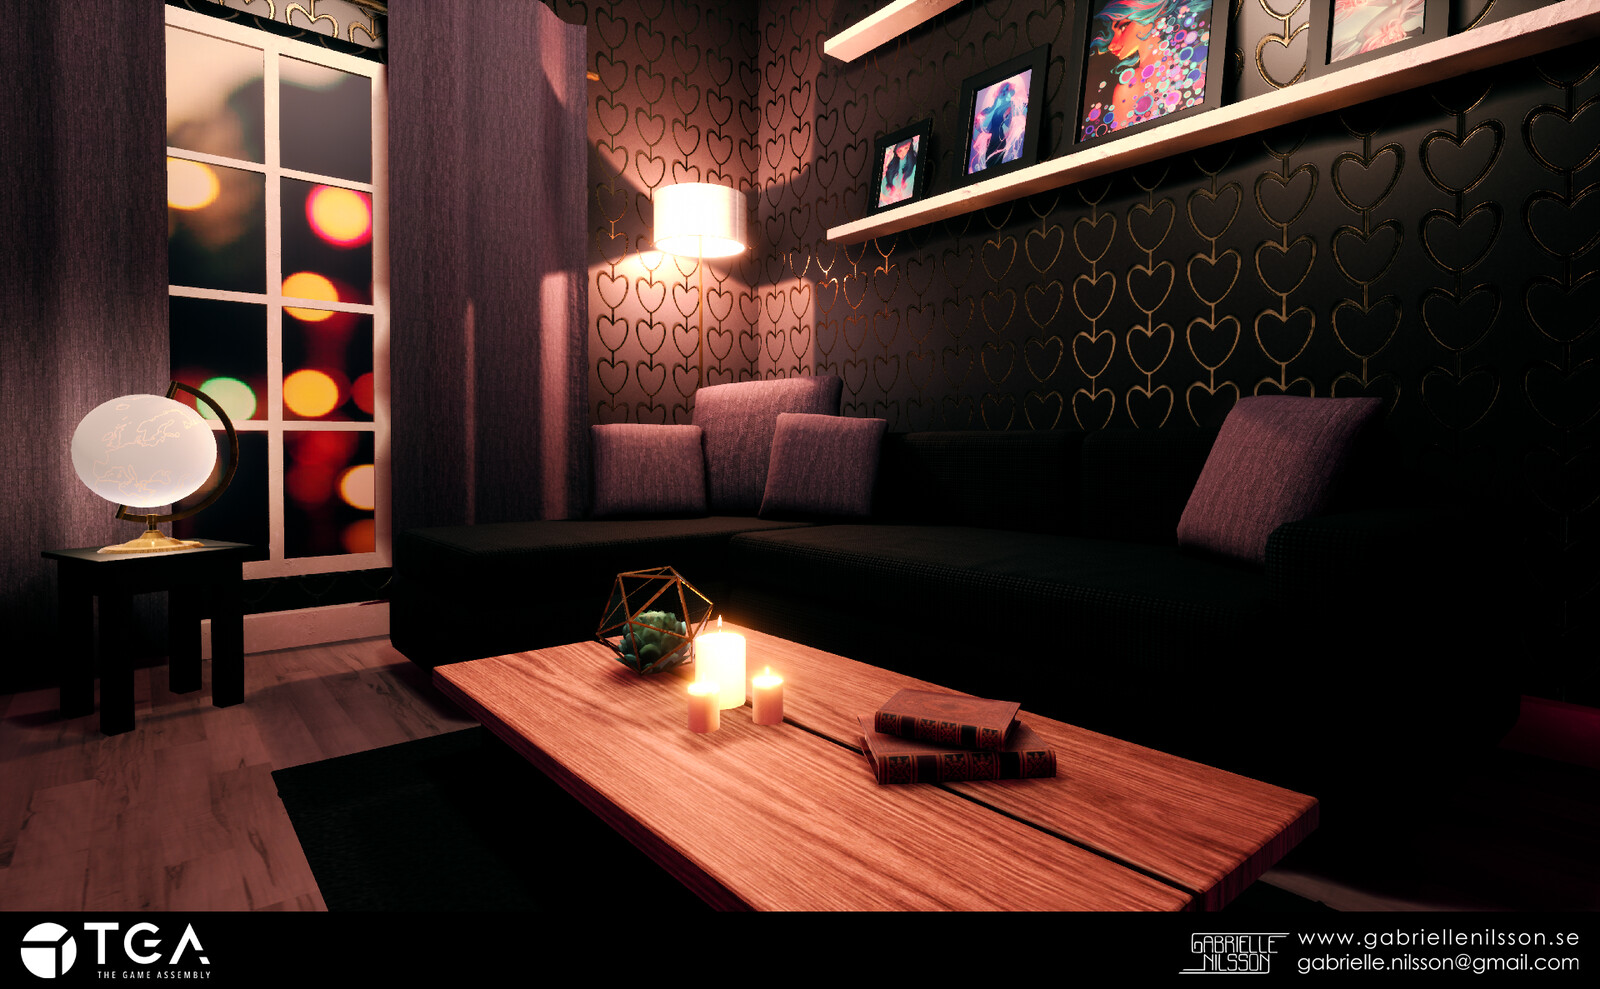 My first real environment. Rendered in Unreal. I was very proud of this at the time and it was another milestone in my 3D journey. In the frames you can see art from the amazing Lois van Baarle.